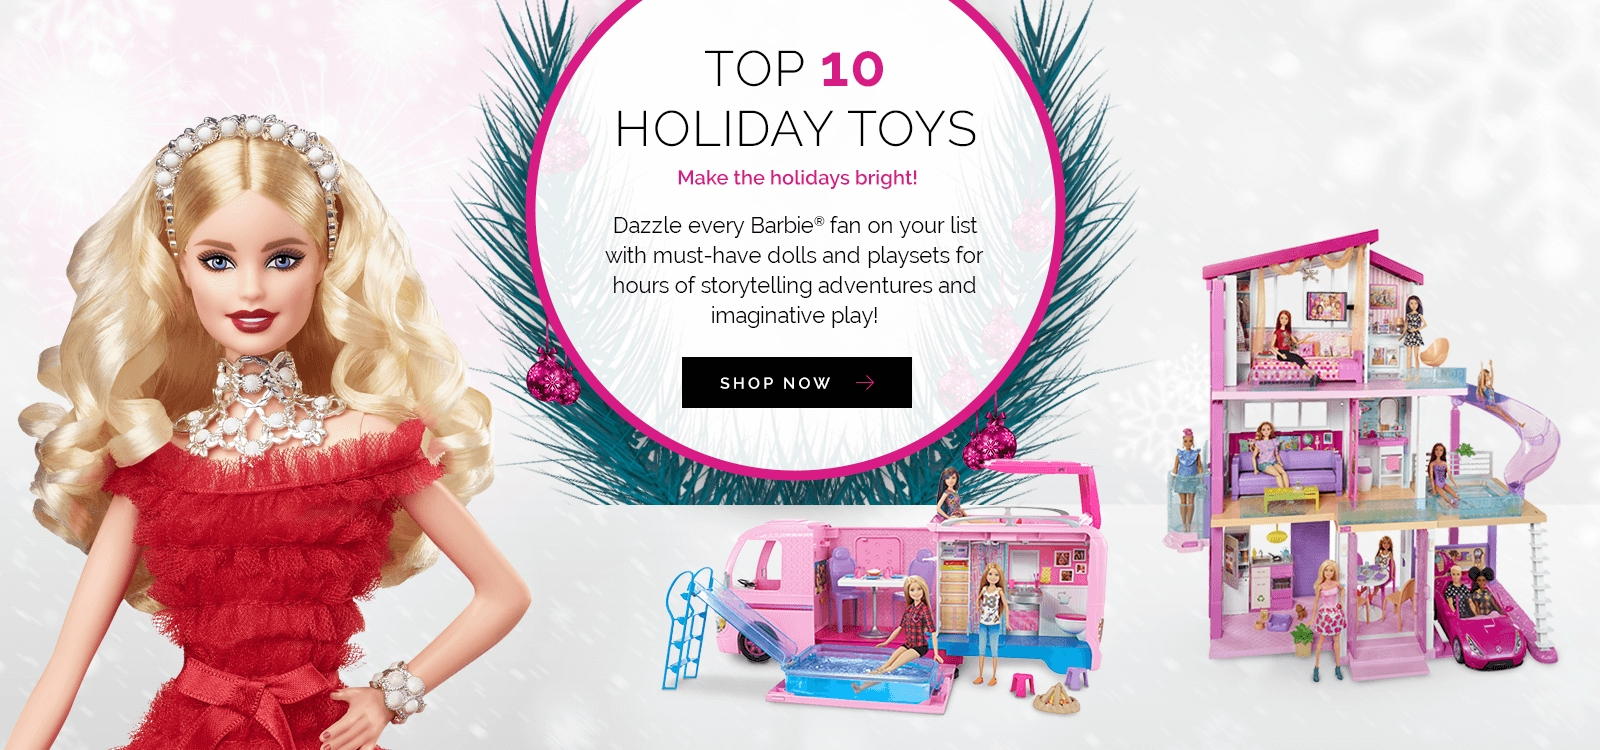 Barbie Holiday Toys